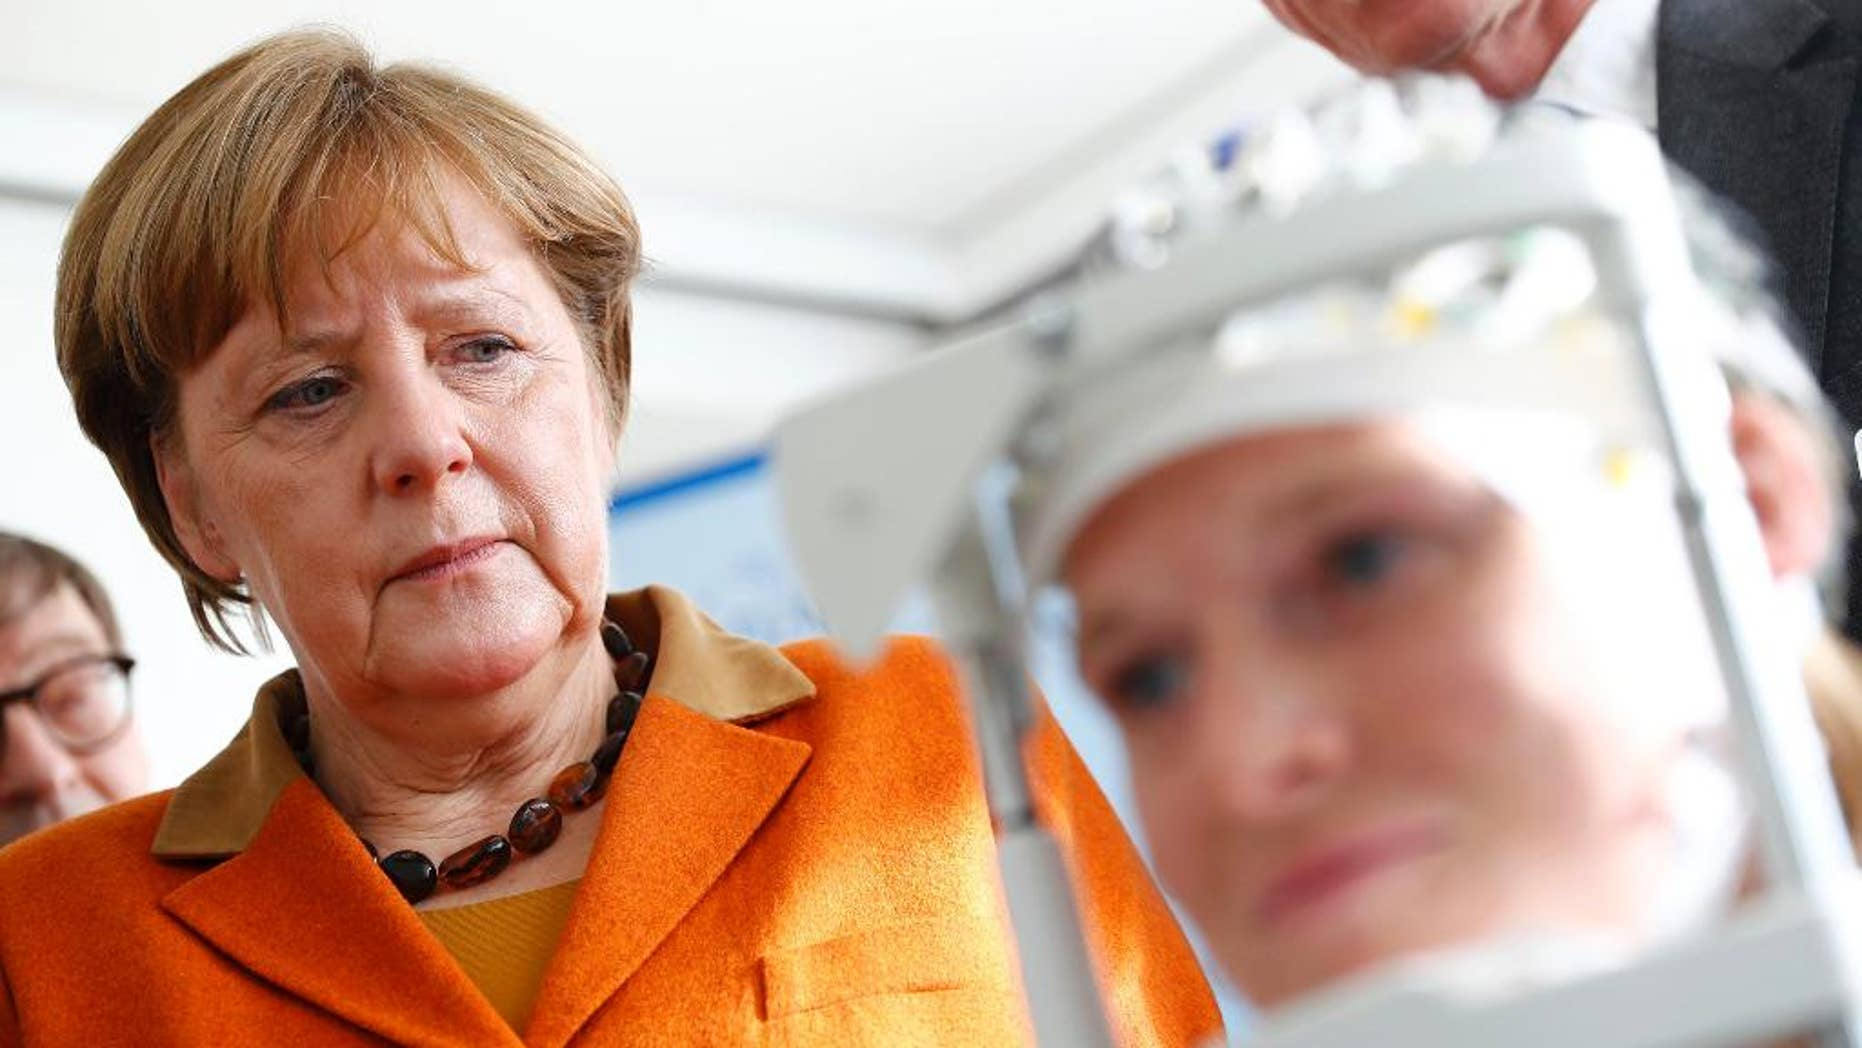 German Chancellor Angela Merkel visits the section for measuring brain waves at the new research center for dementia diseases DZNE at the university hospital in Bonn, Germany, Wednesday, March 15, 2017. (Wolfgang Rattay/Pool Photo via AP